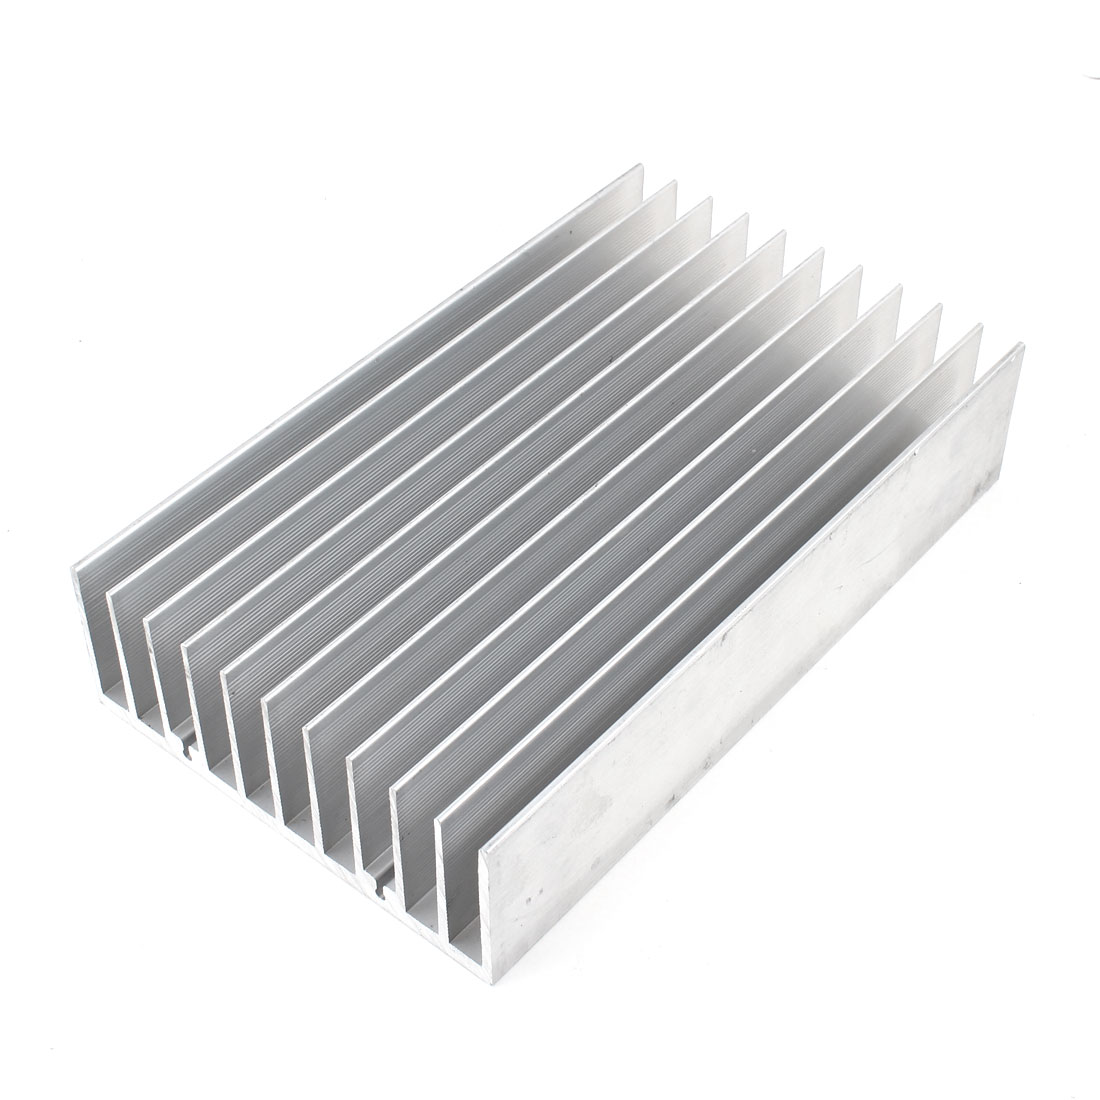 Silver Tone Heat Sink Cooling Cooler Fin 200mmx120mmx45mm for Mosfet IC